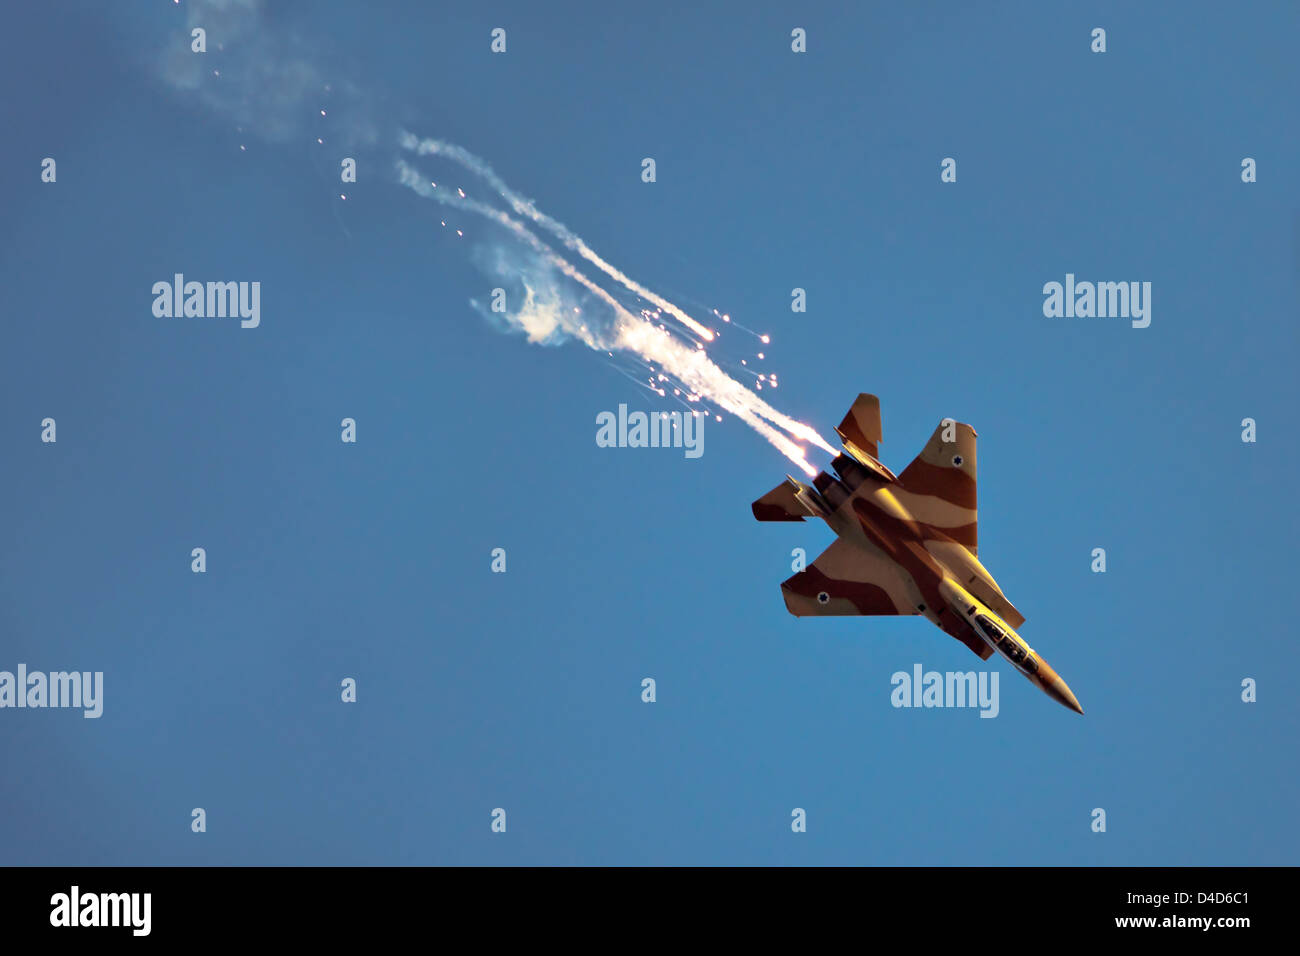 Israeli Air force F-15I Fighter in flight Emitting anti-missile flares - Stock Image